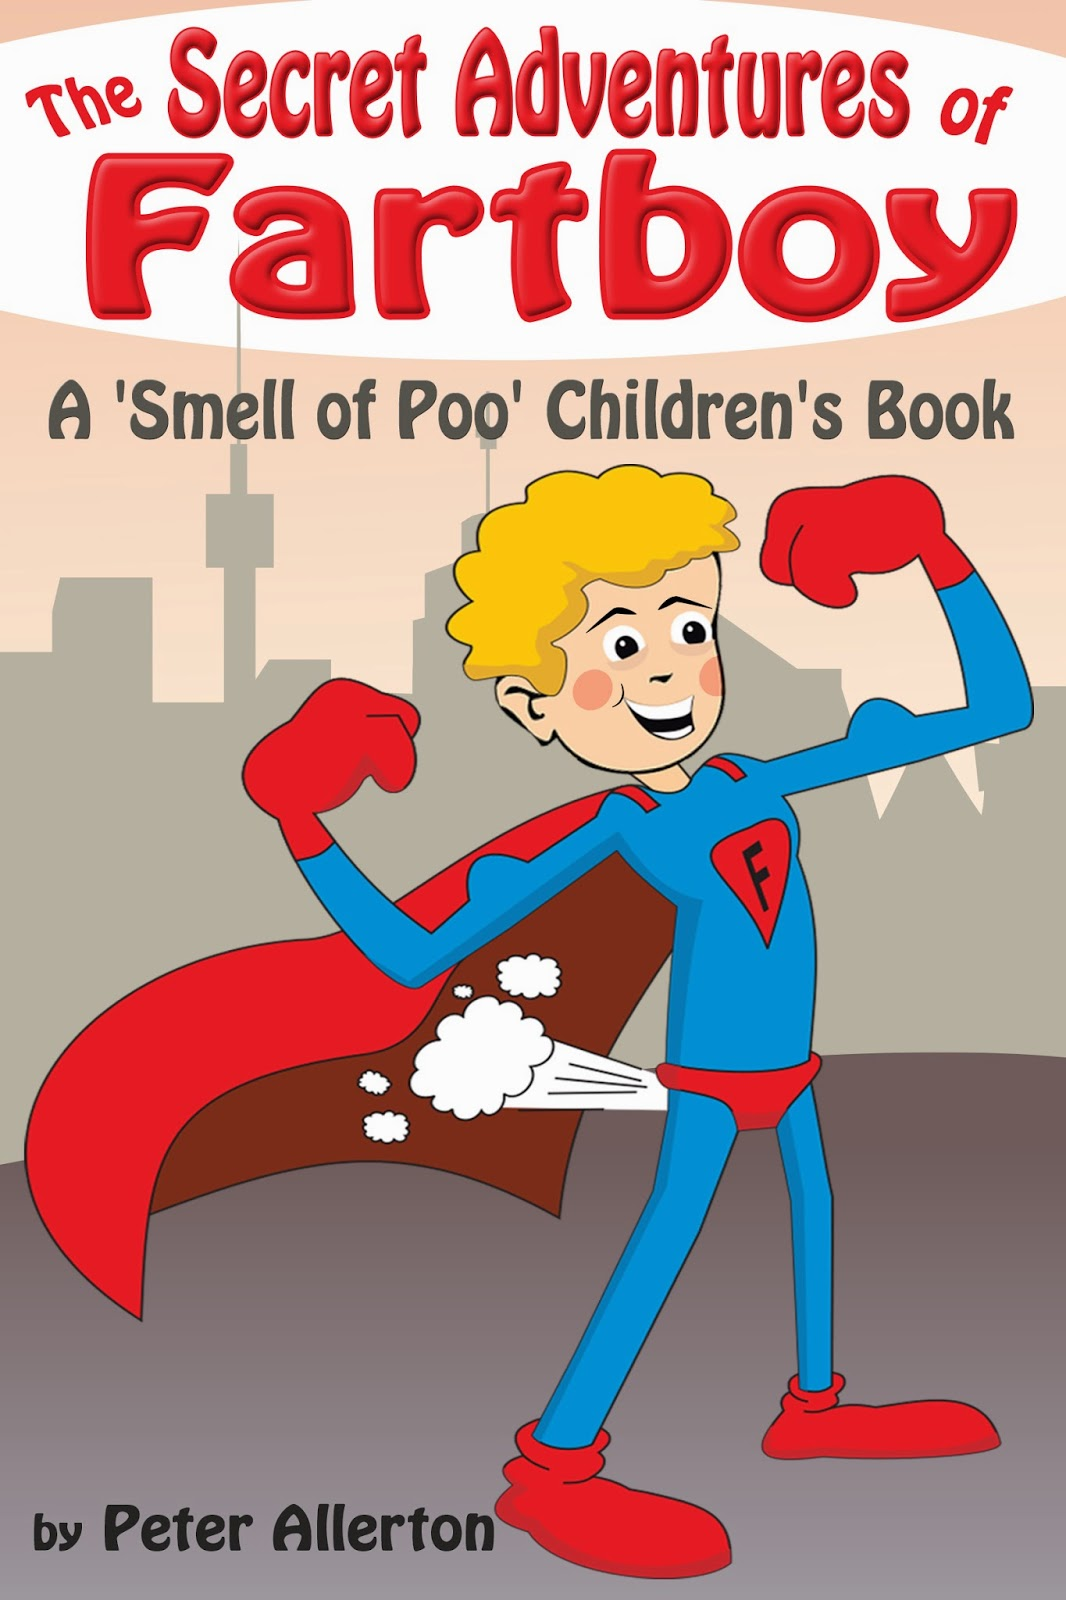 funny superhero children's story book